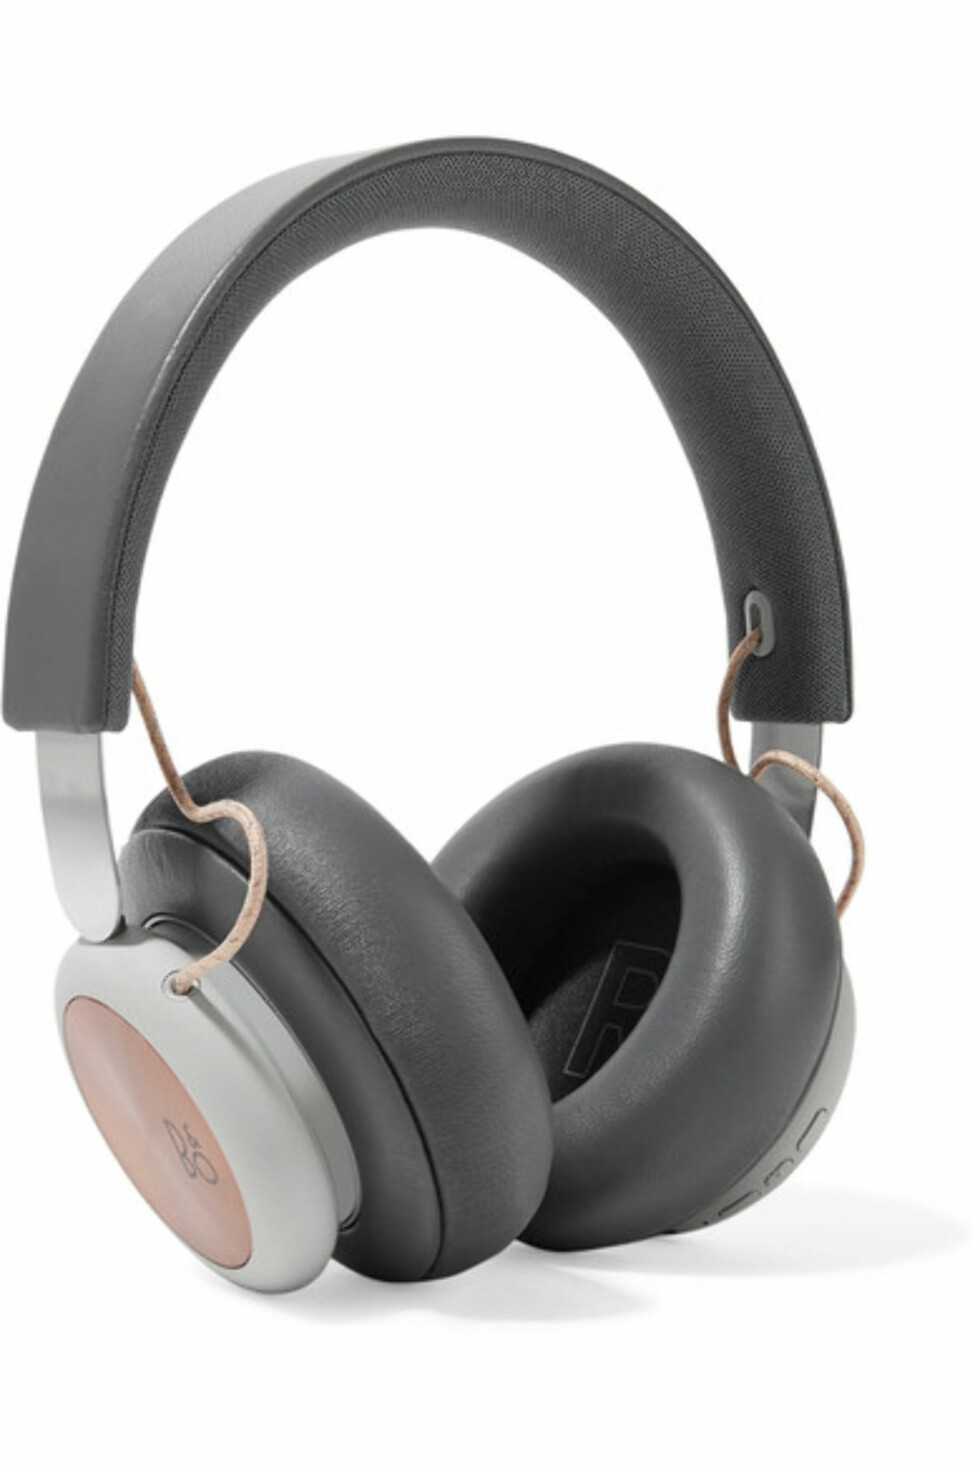 Headset fra B&O Play via Net-a-porter.com |3000,-| https://www.net-a-porter.com/no/en/product/1019869/b_o_play/h4-wireless-leather-and-aluminium-headphones